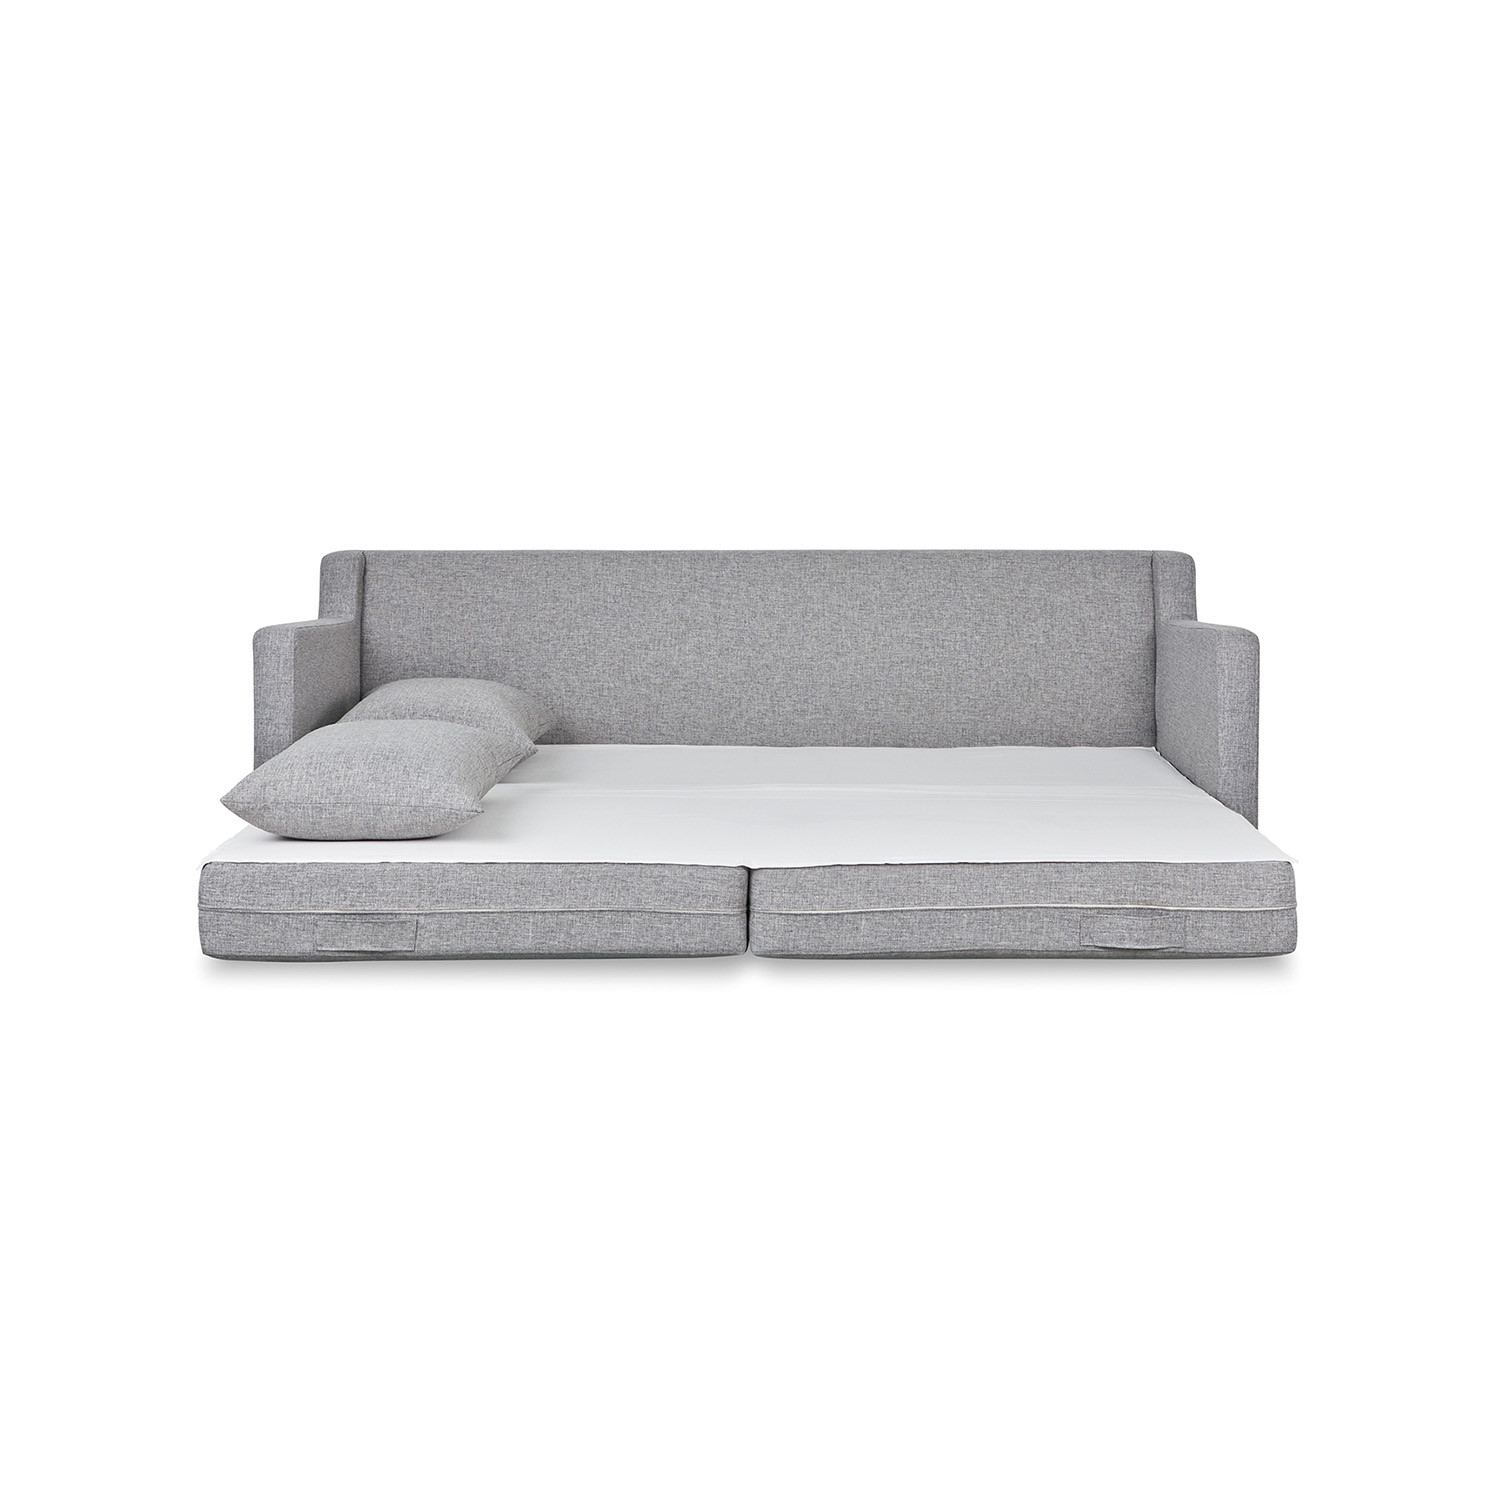 Gus Flip Sofa Bed Price picture on flipside sofa bed with Gus Flip Sofa Bed Price, sofa 833664e168ab961053529b50b531d634